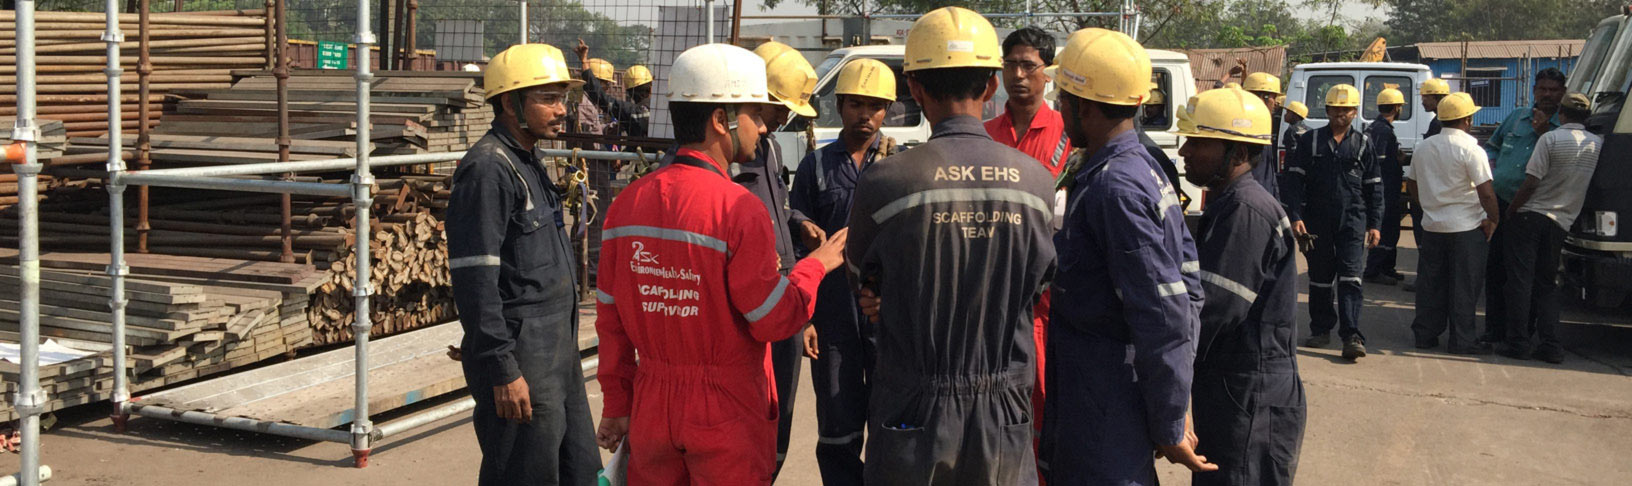 ASK-EHS Scaffolding team working on site in India